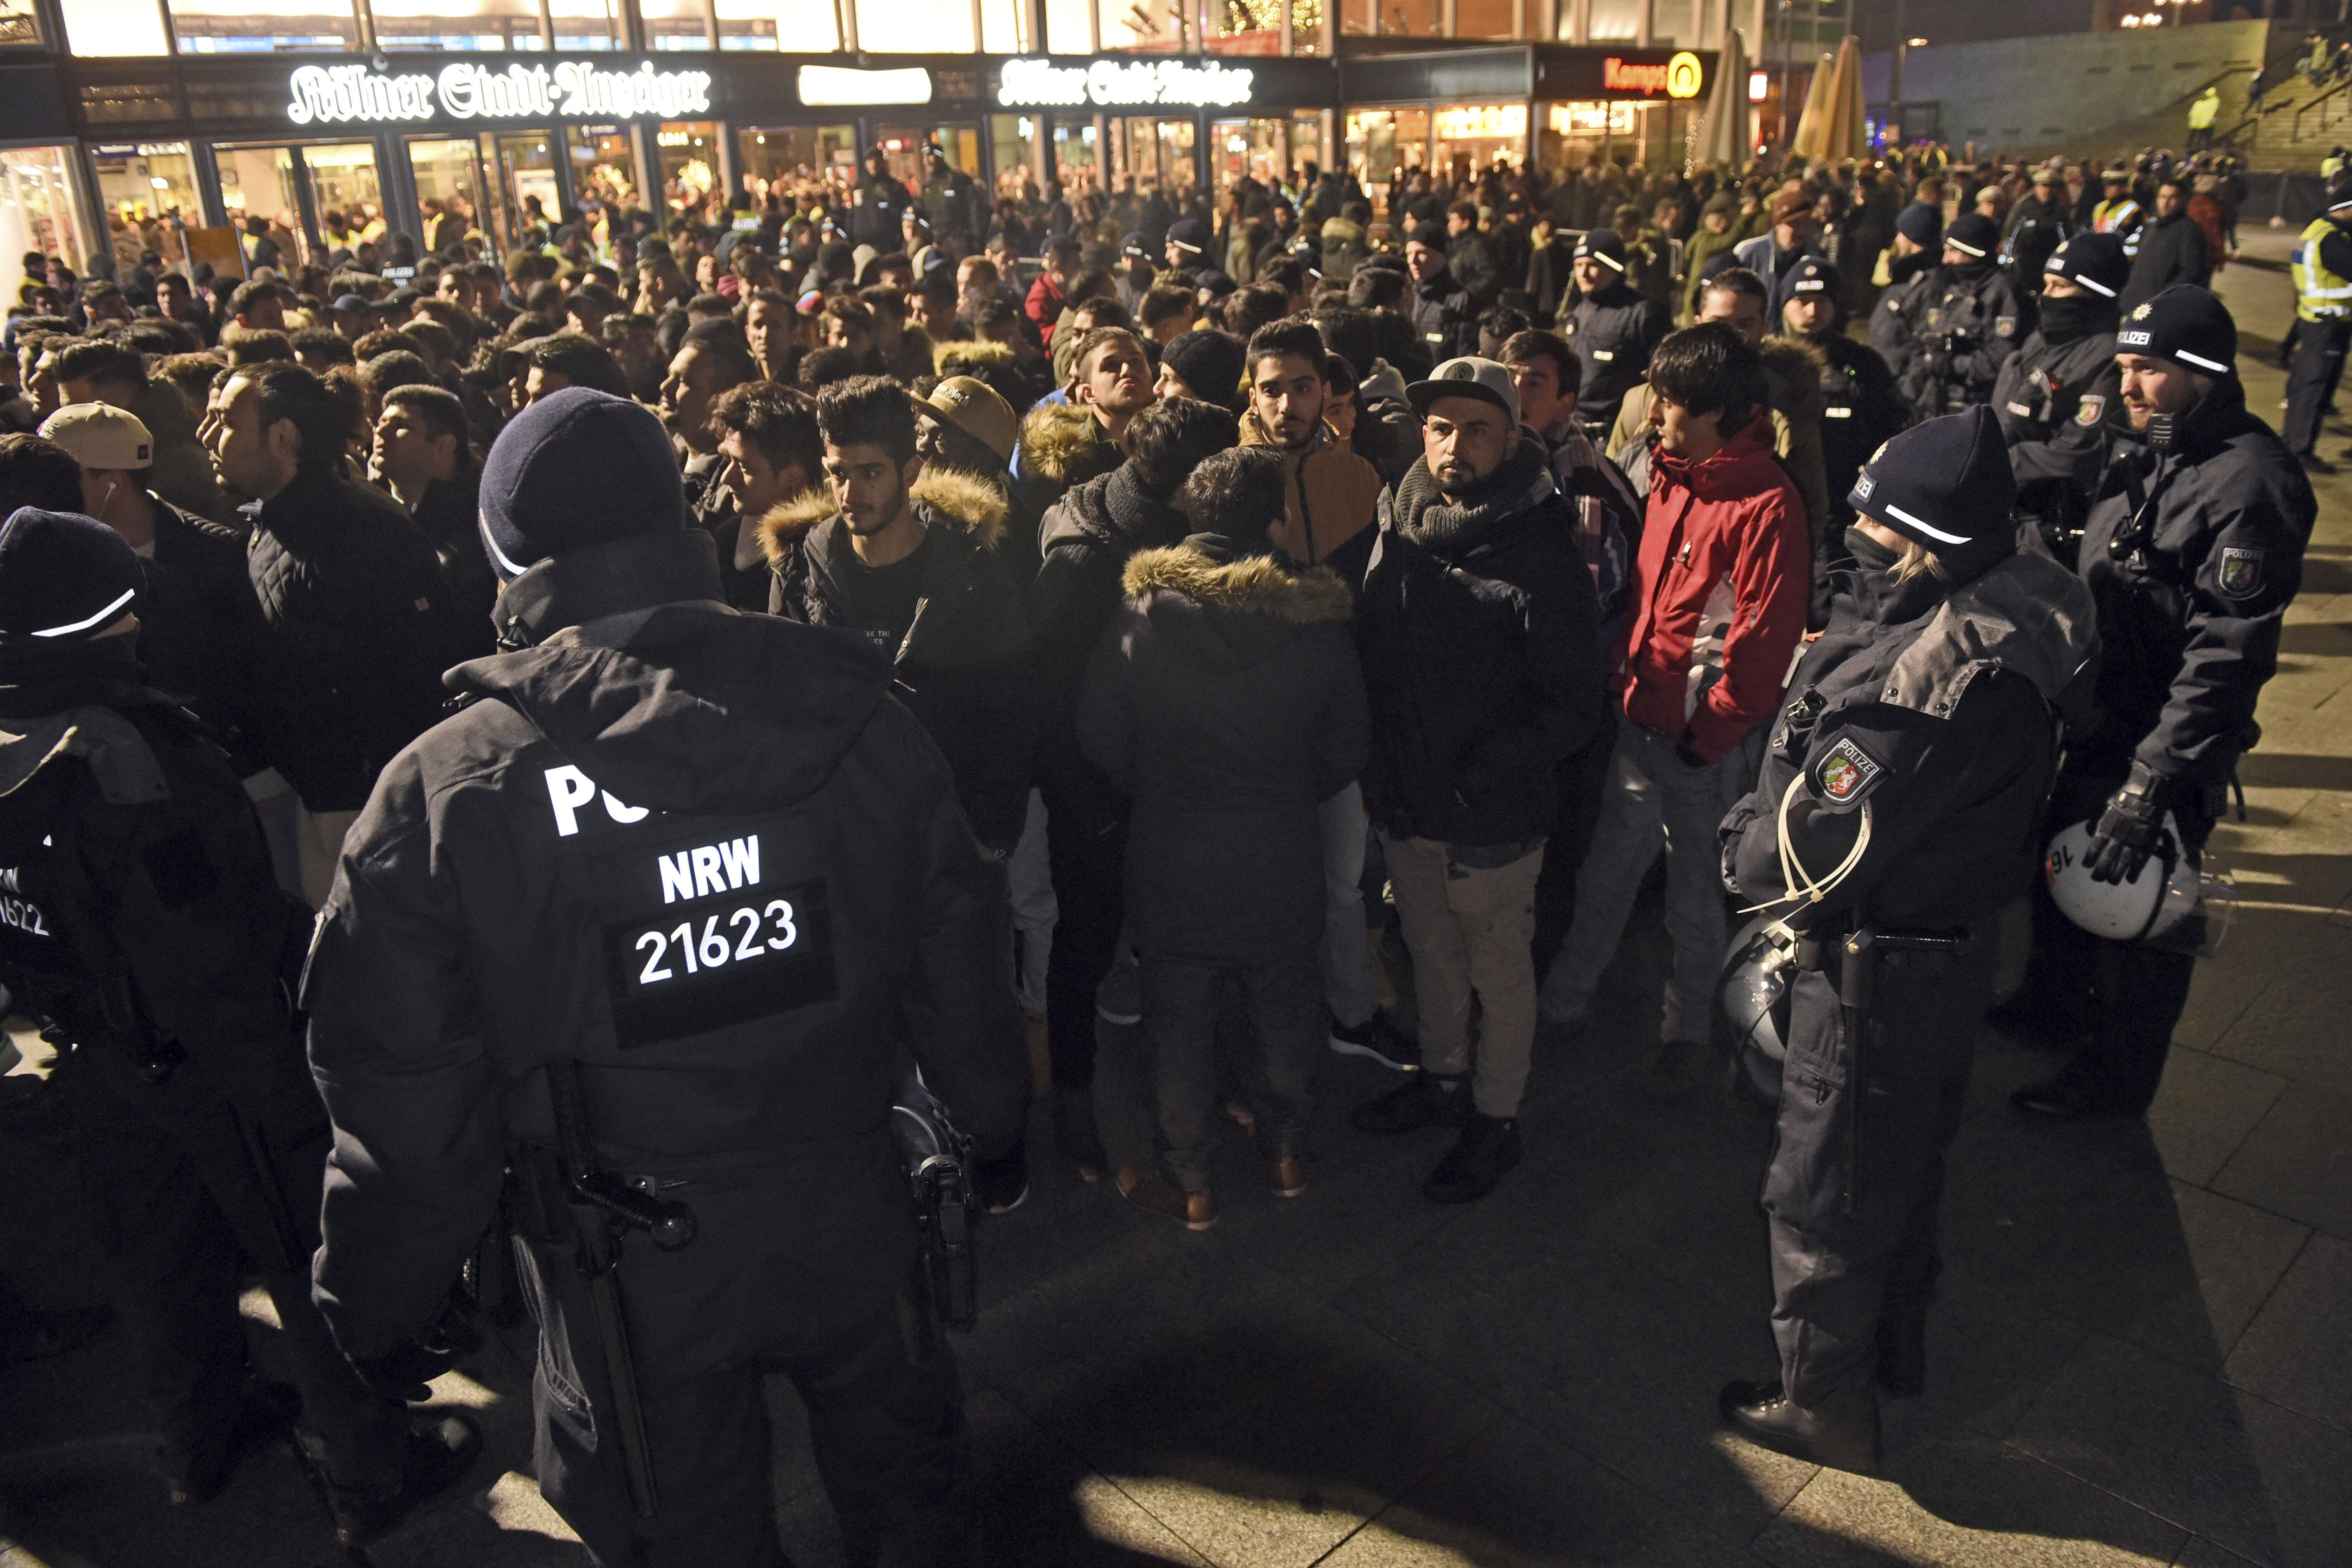 Cologne police criticized for alleged New Year's race profiling